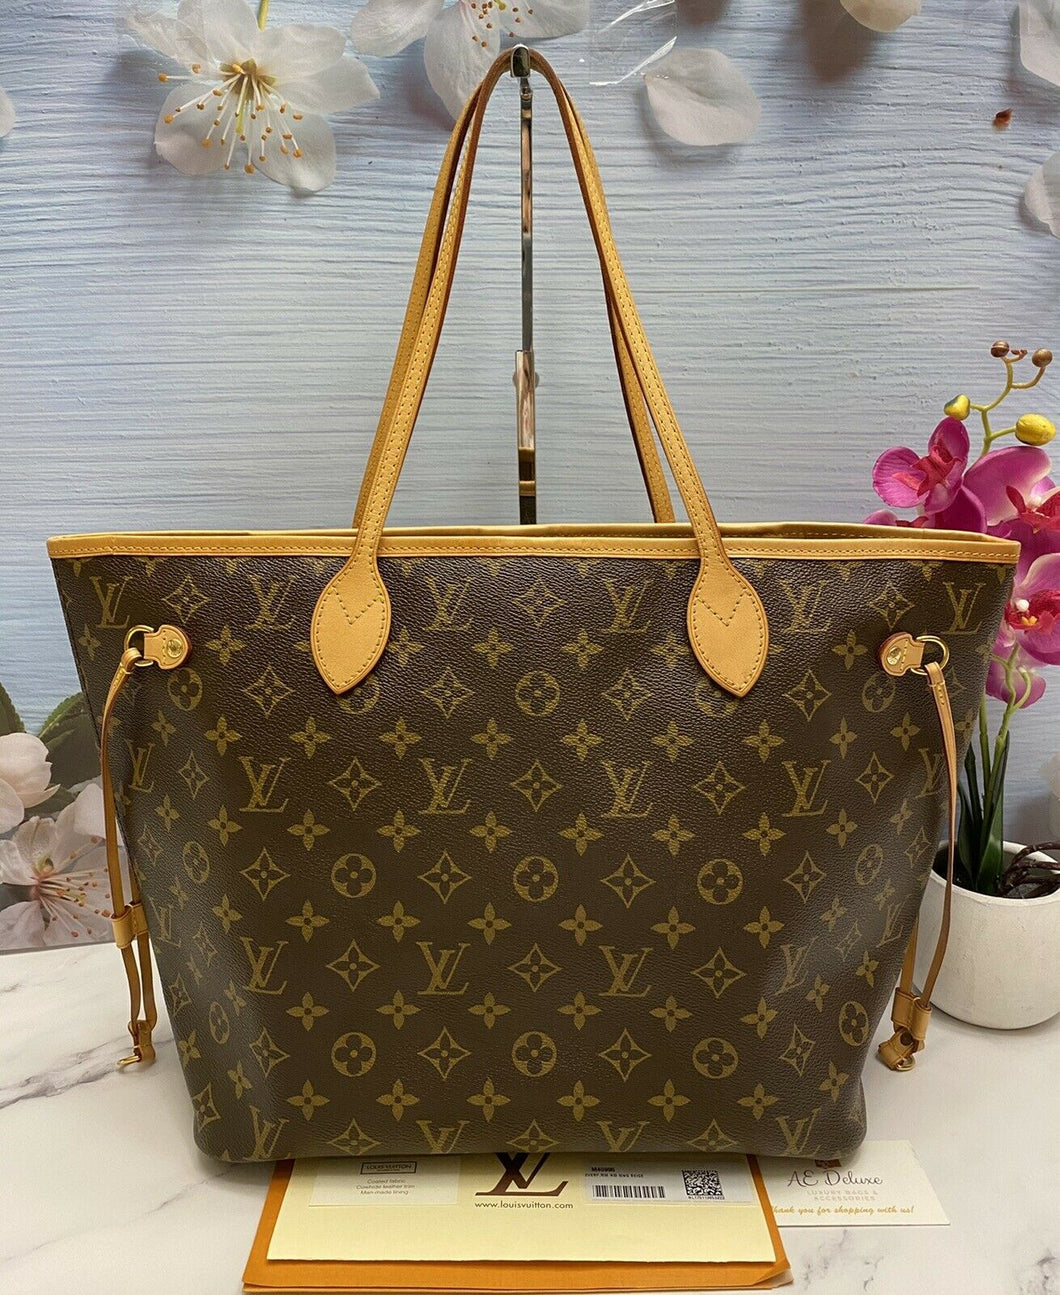 Louis Vuitton Neverfull MM Monogram (SP0127)